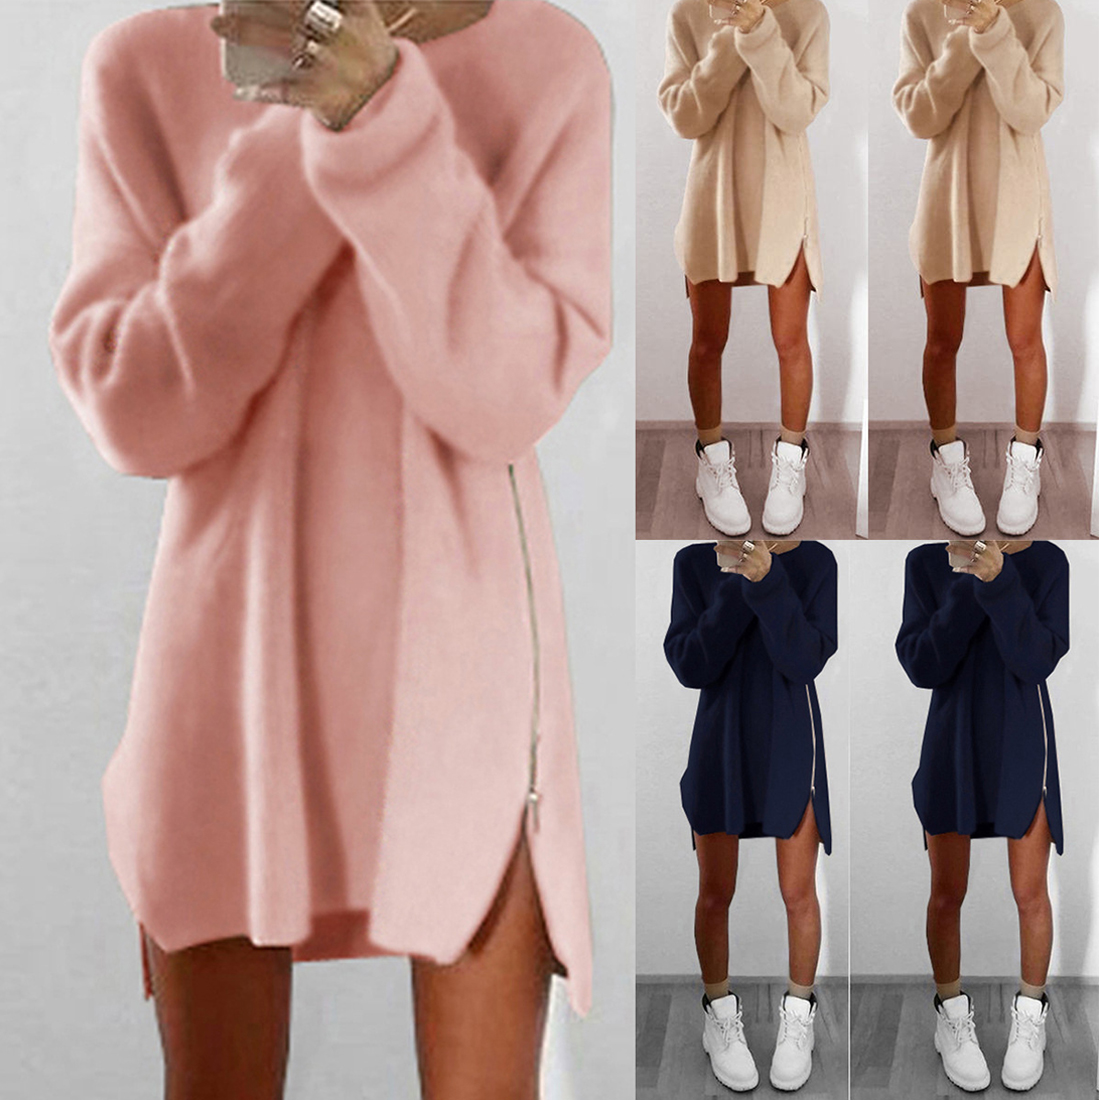 Loose O-neck Pullover Female Knitted Dress  Women Autumn Winter Dress  Solid Knitted Cotton Sweater Dresses Zip Vestidos Hot